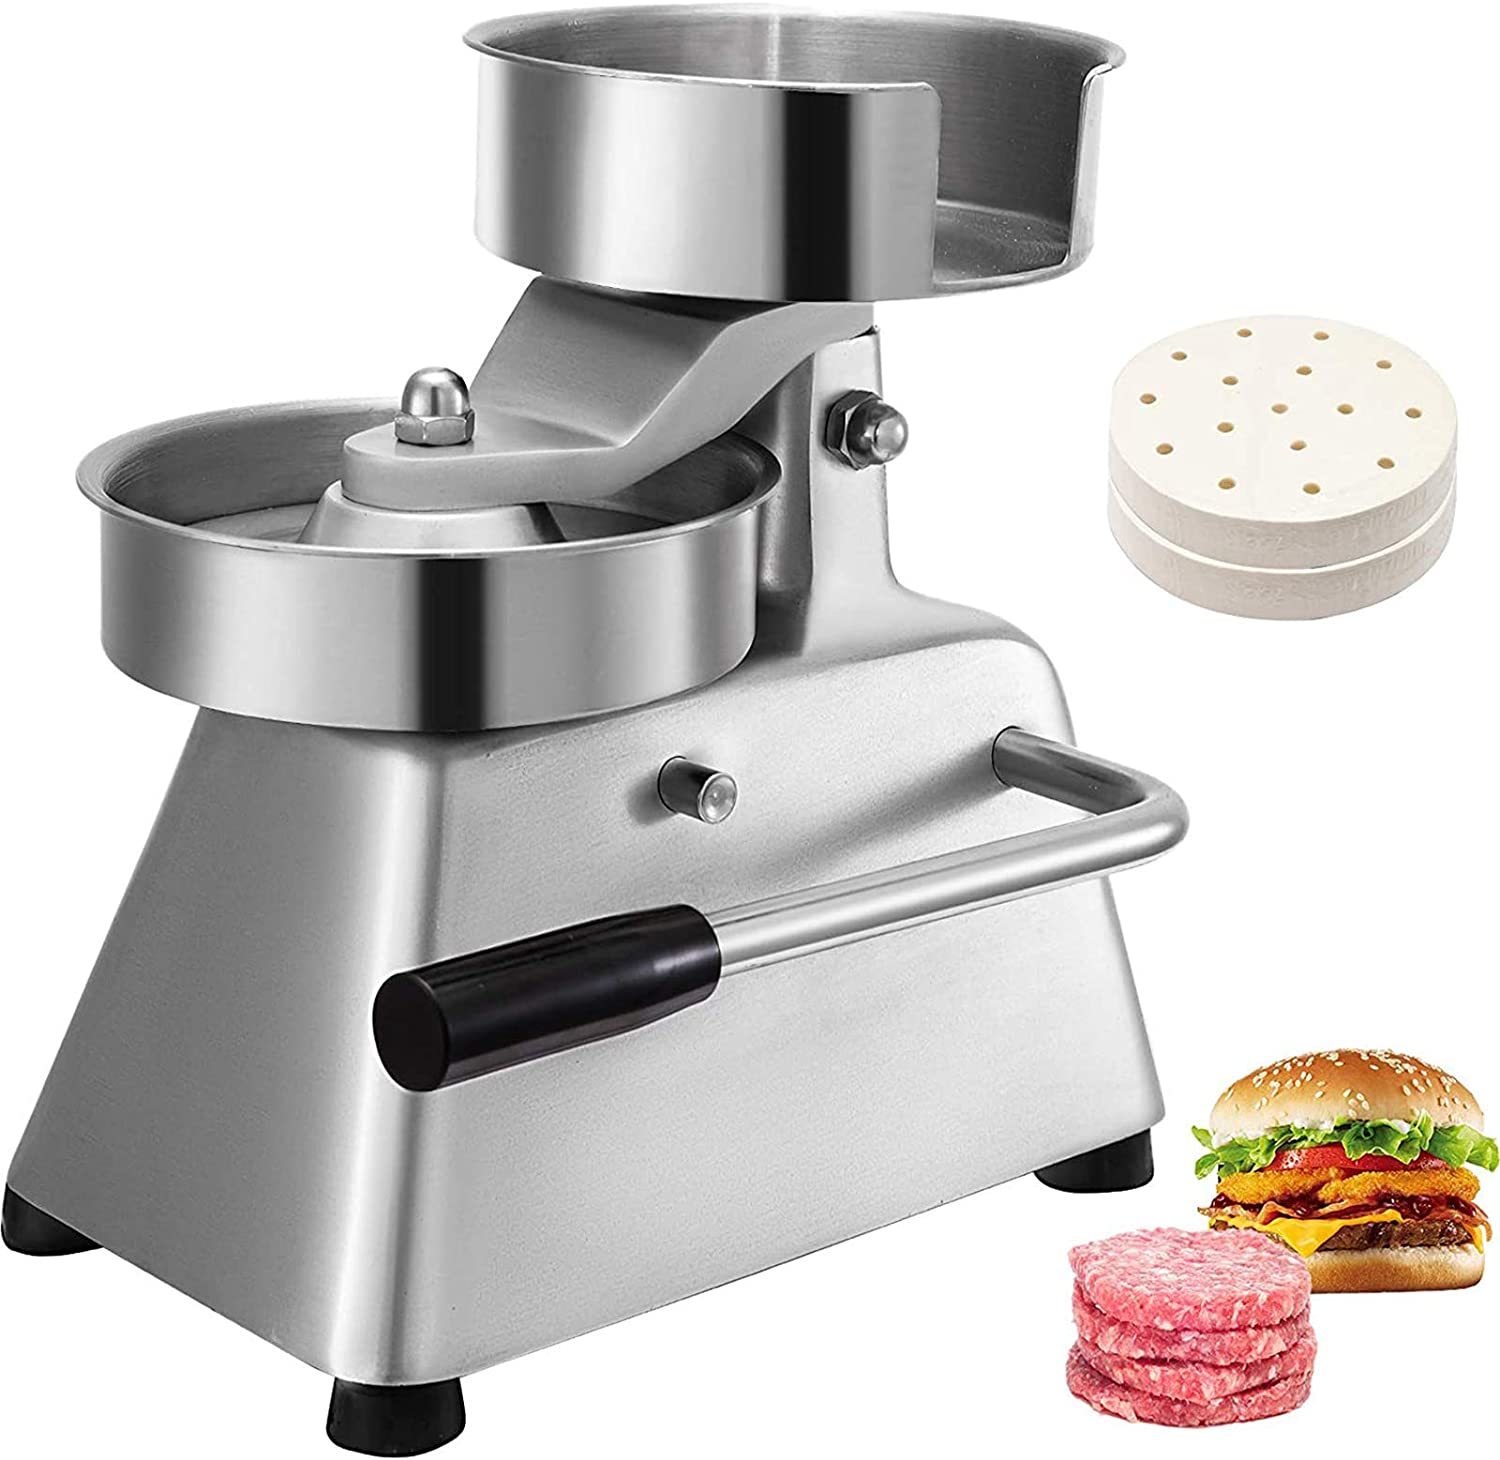 VBENLEM Commercial Hamburger Patty Maker Max 49% OFF 6inch Manufacturer regenerated product 150mm Stainless S